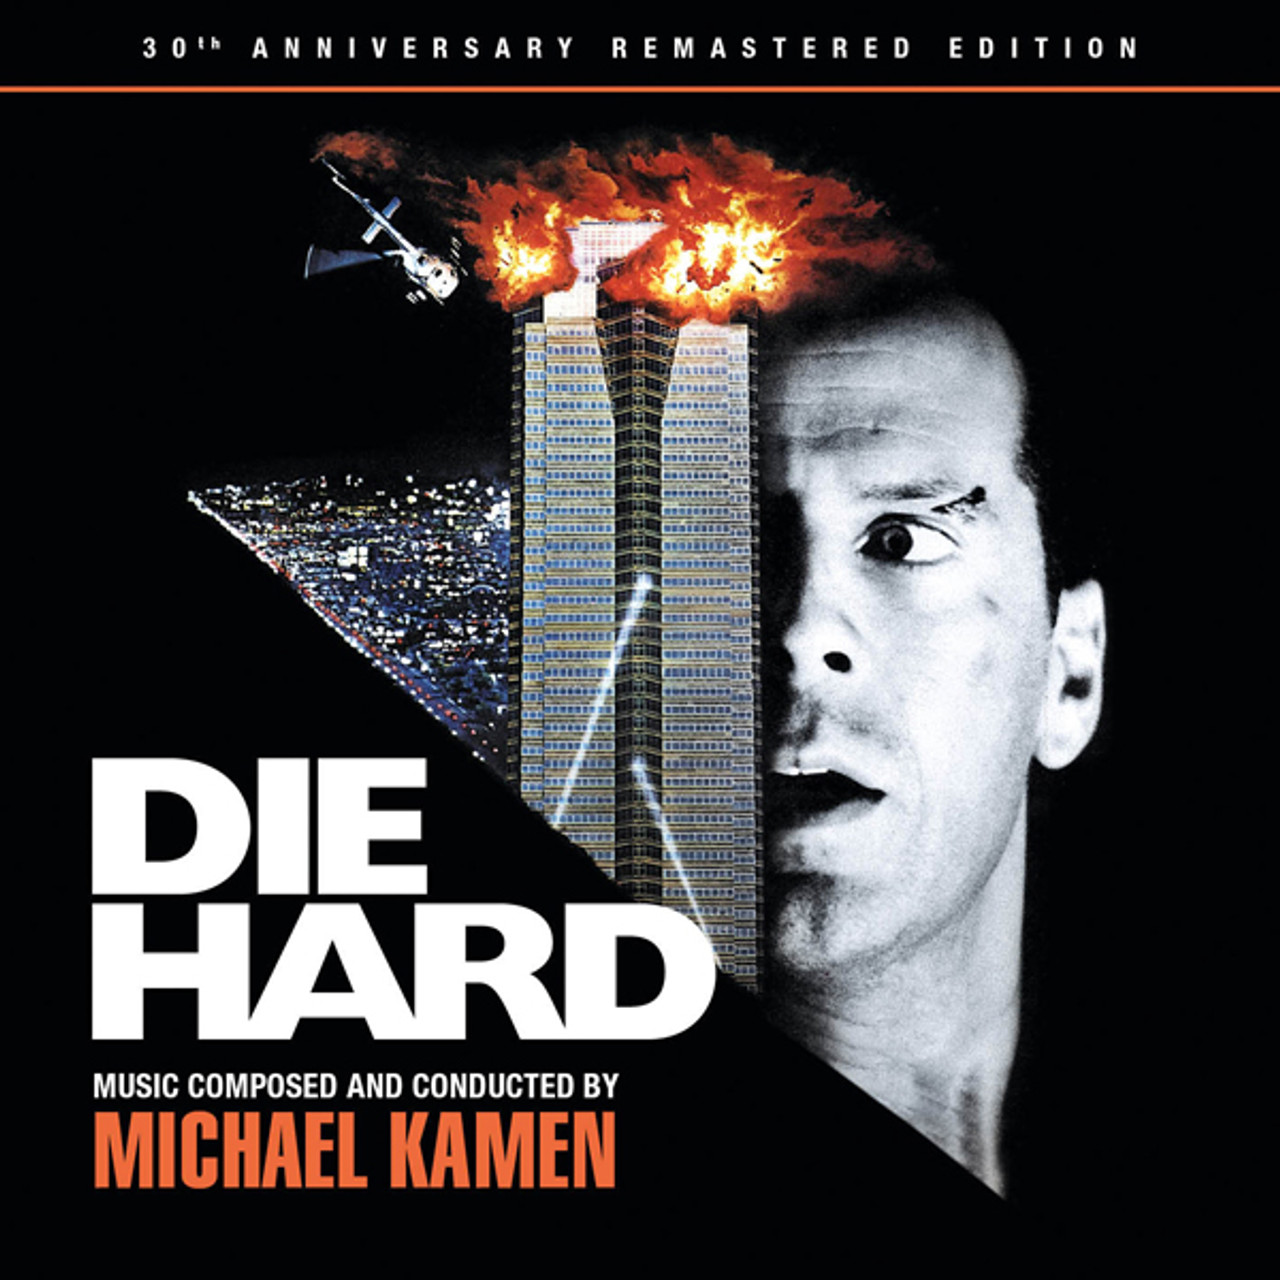 Die-Hard-30th-iTune-square-600px__31575.